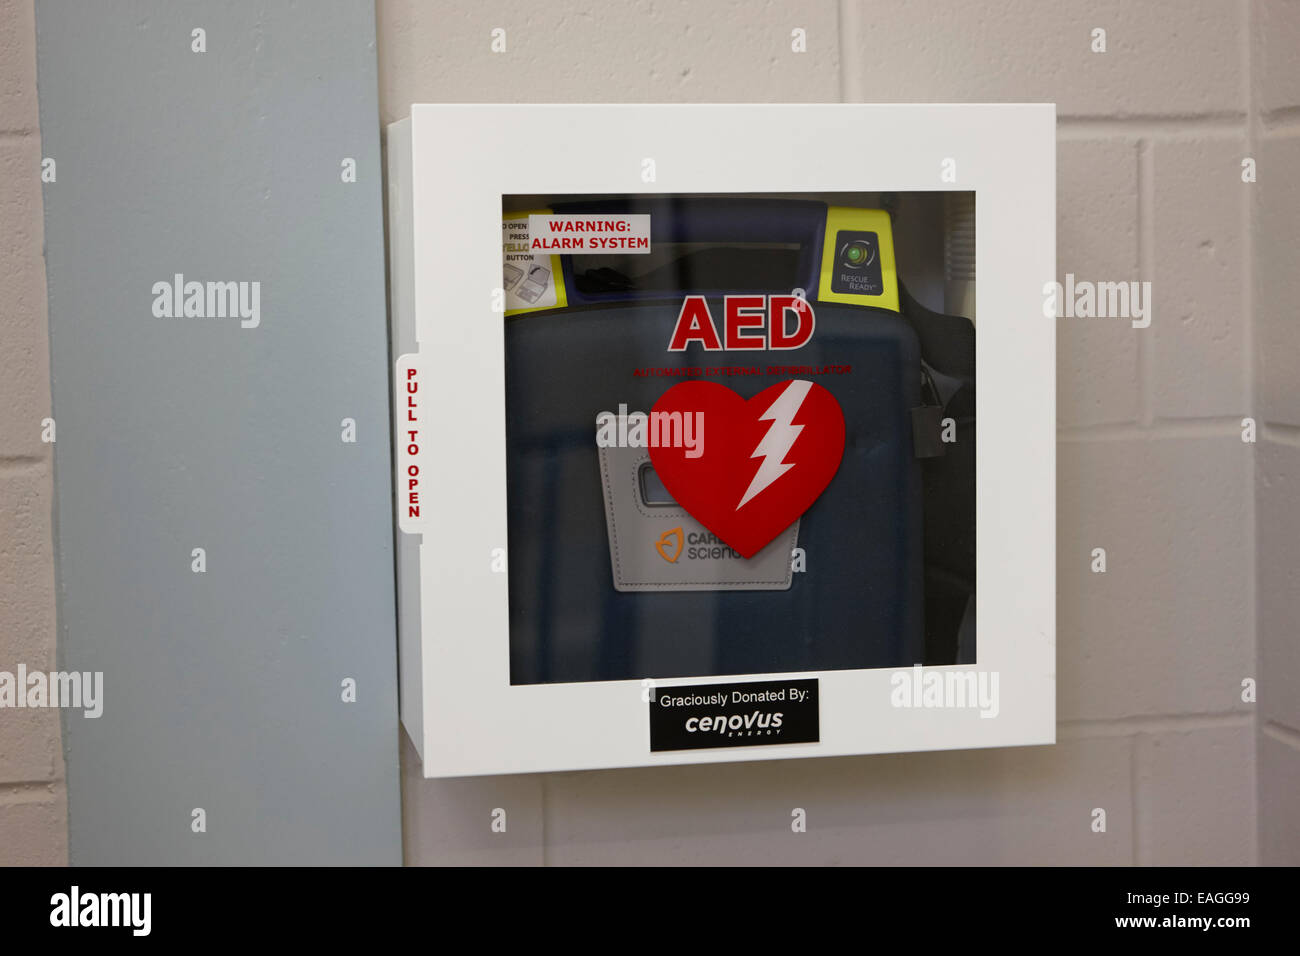 Aed Automated External Defibrillator Installed In A High